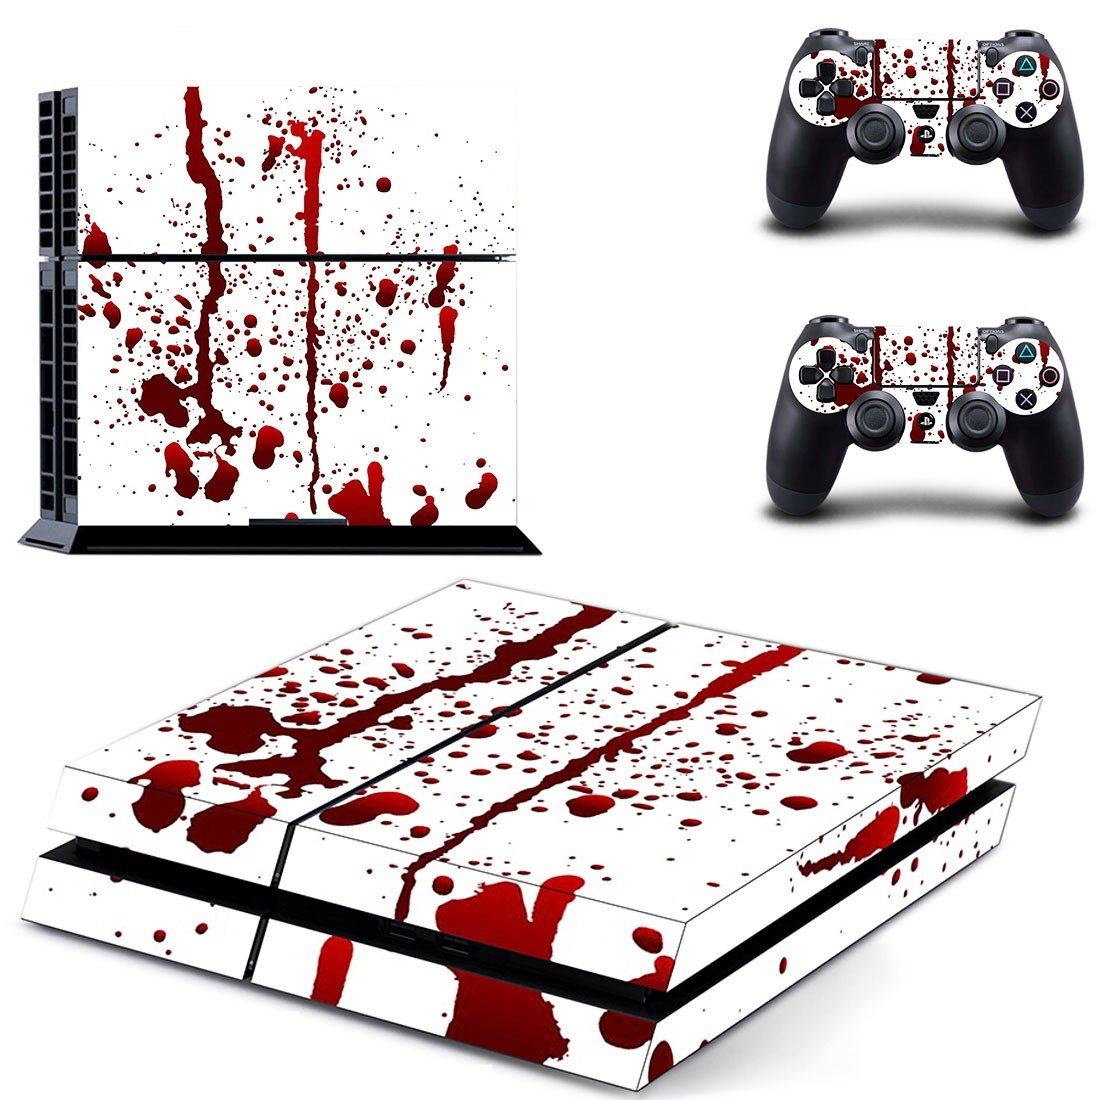 Blood Drops decal skin sticker for PS4 console and controllers